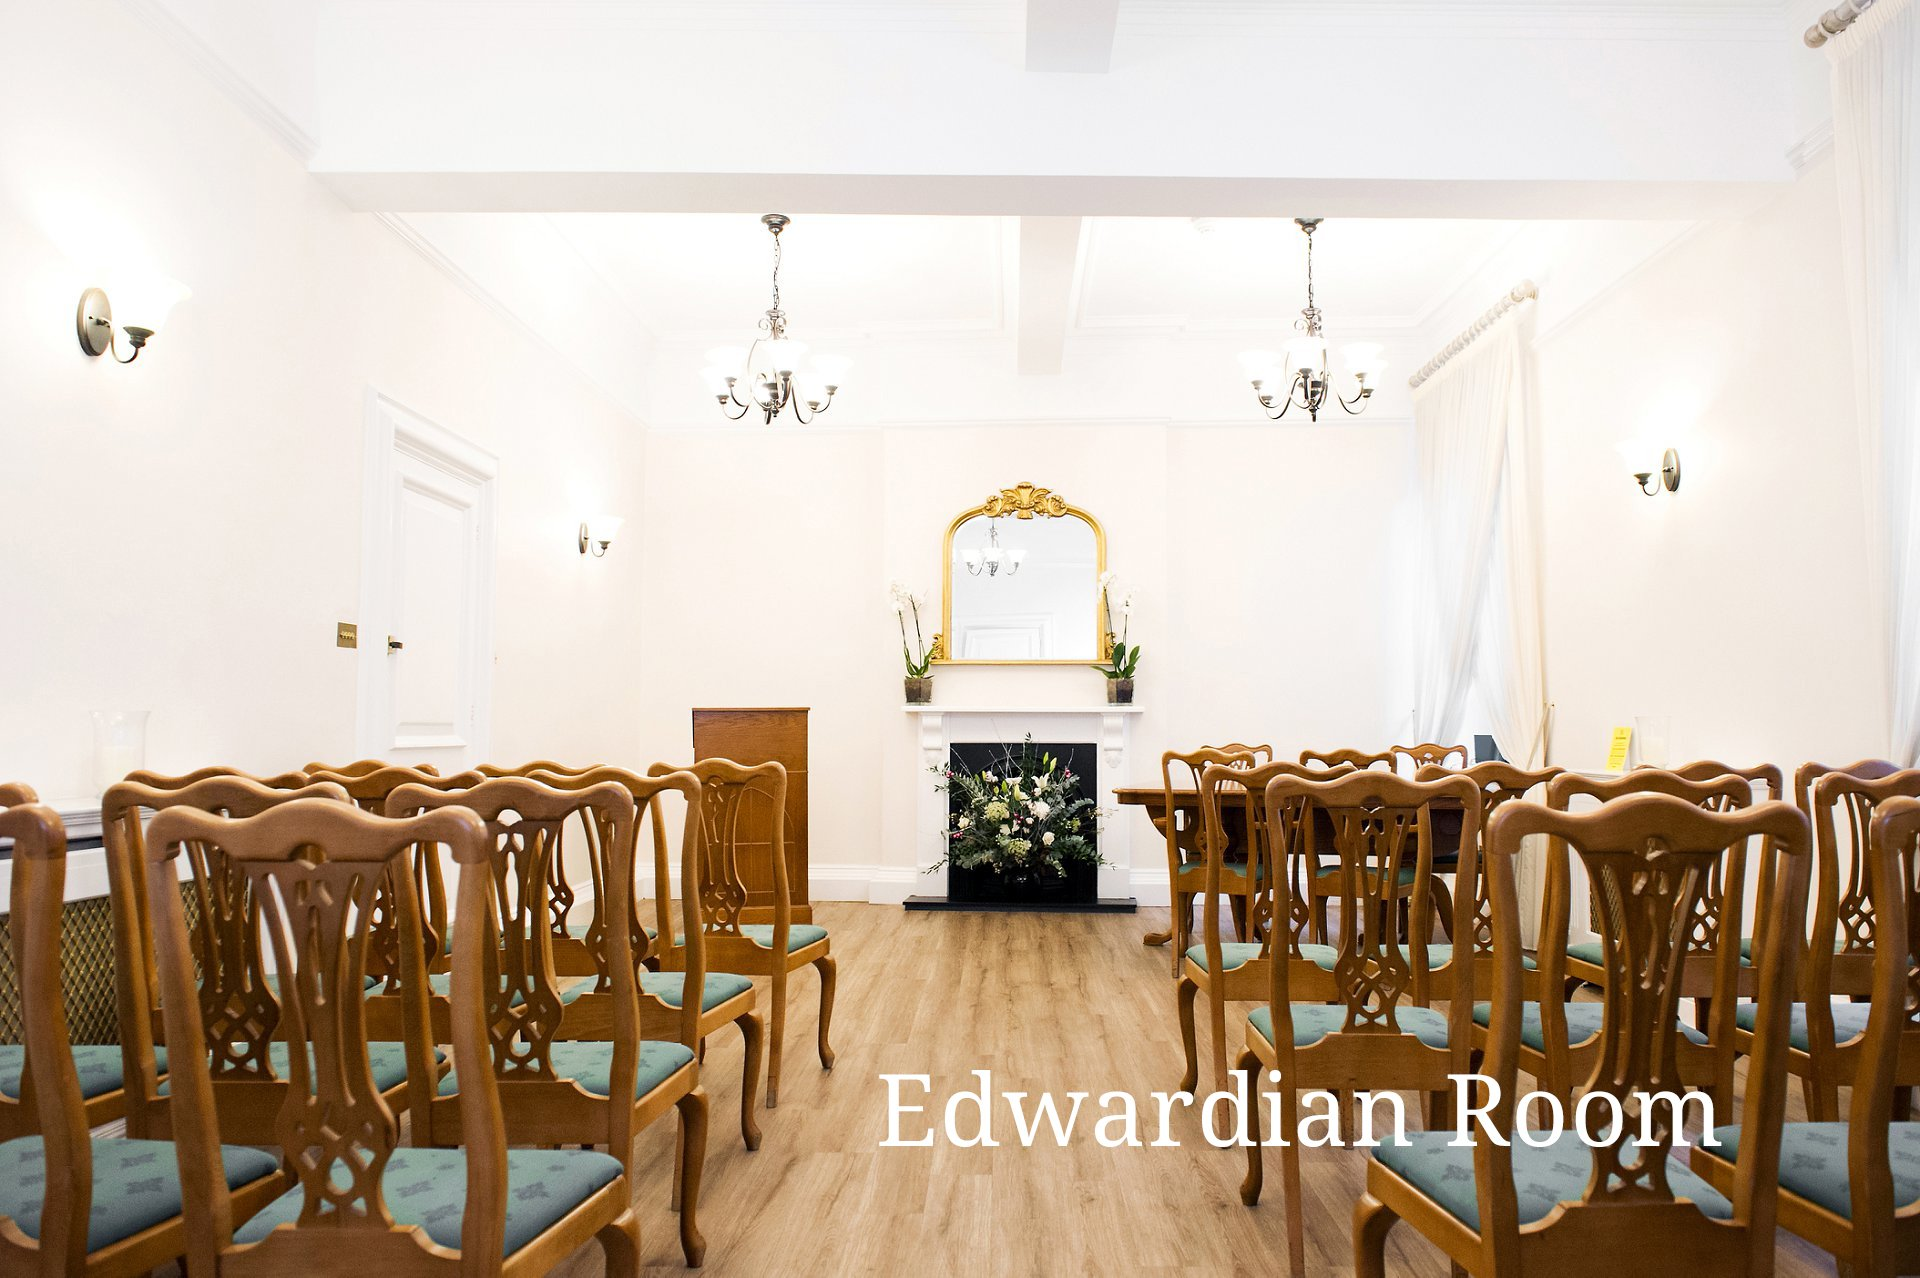 The Edwardian Room at Woolwich Town Hall seats up to 36 guests